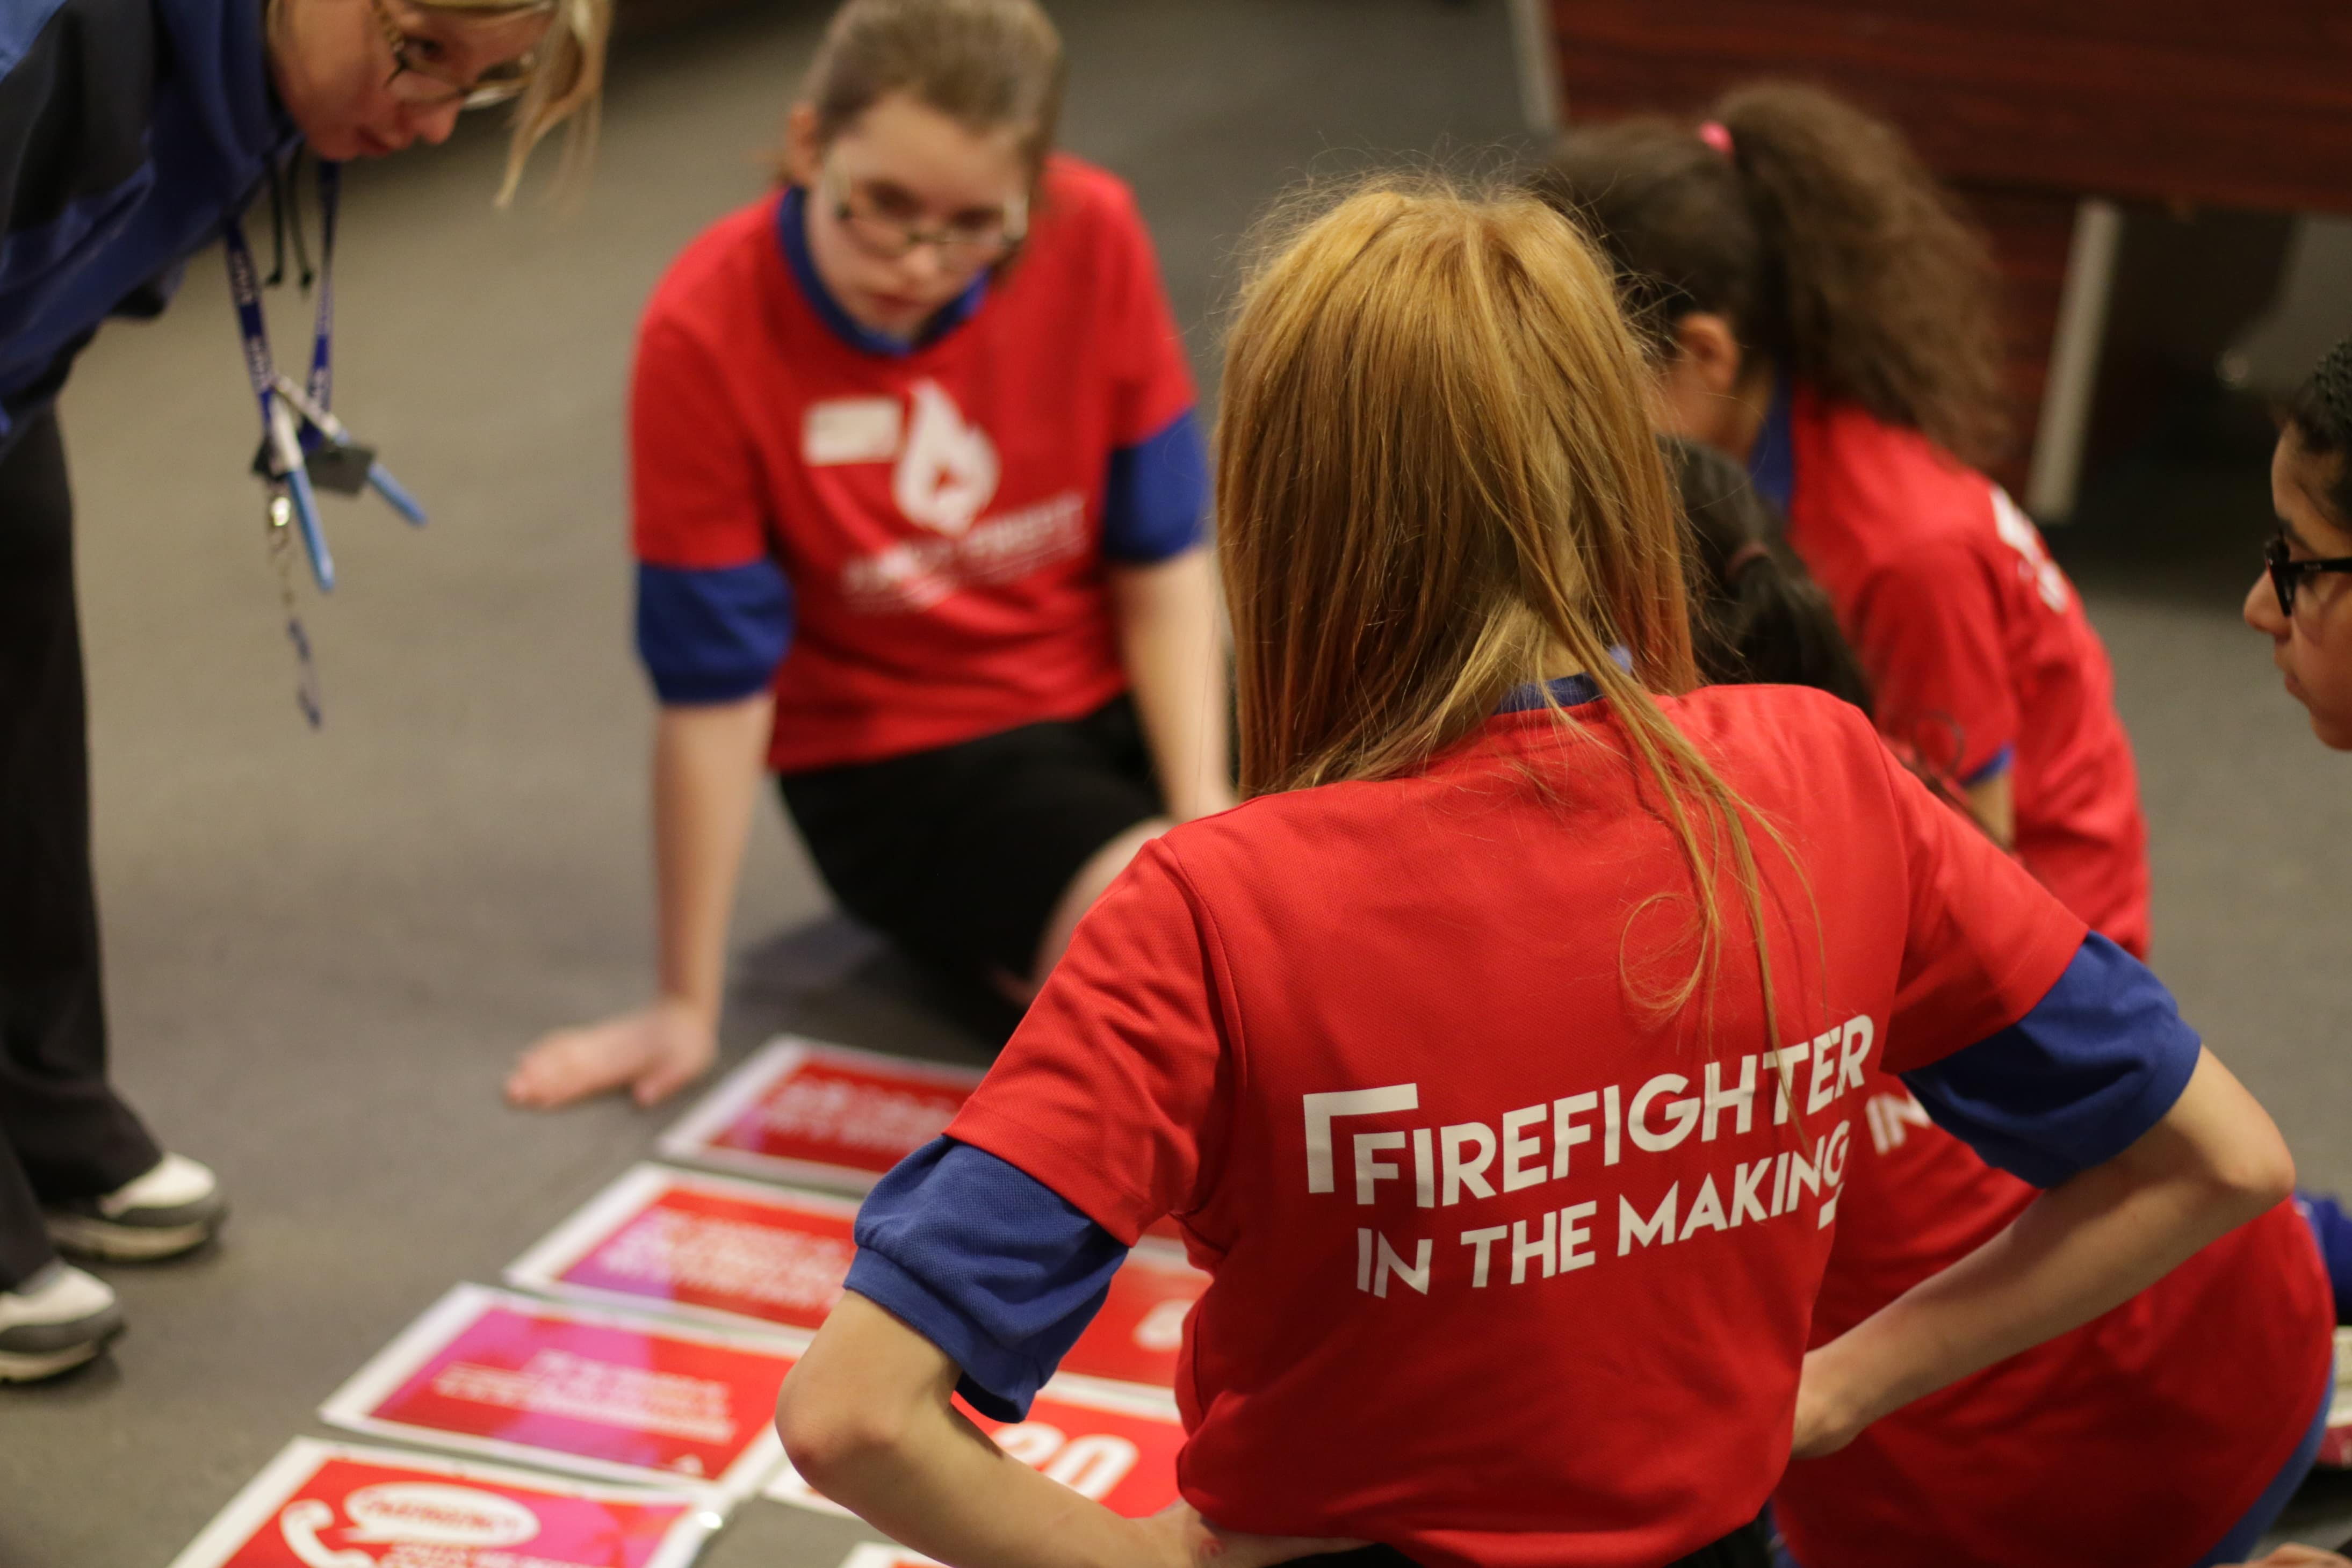 3 girls taking part in Fire Fit Activity session